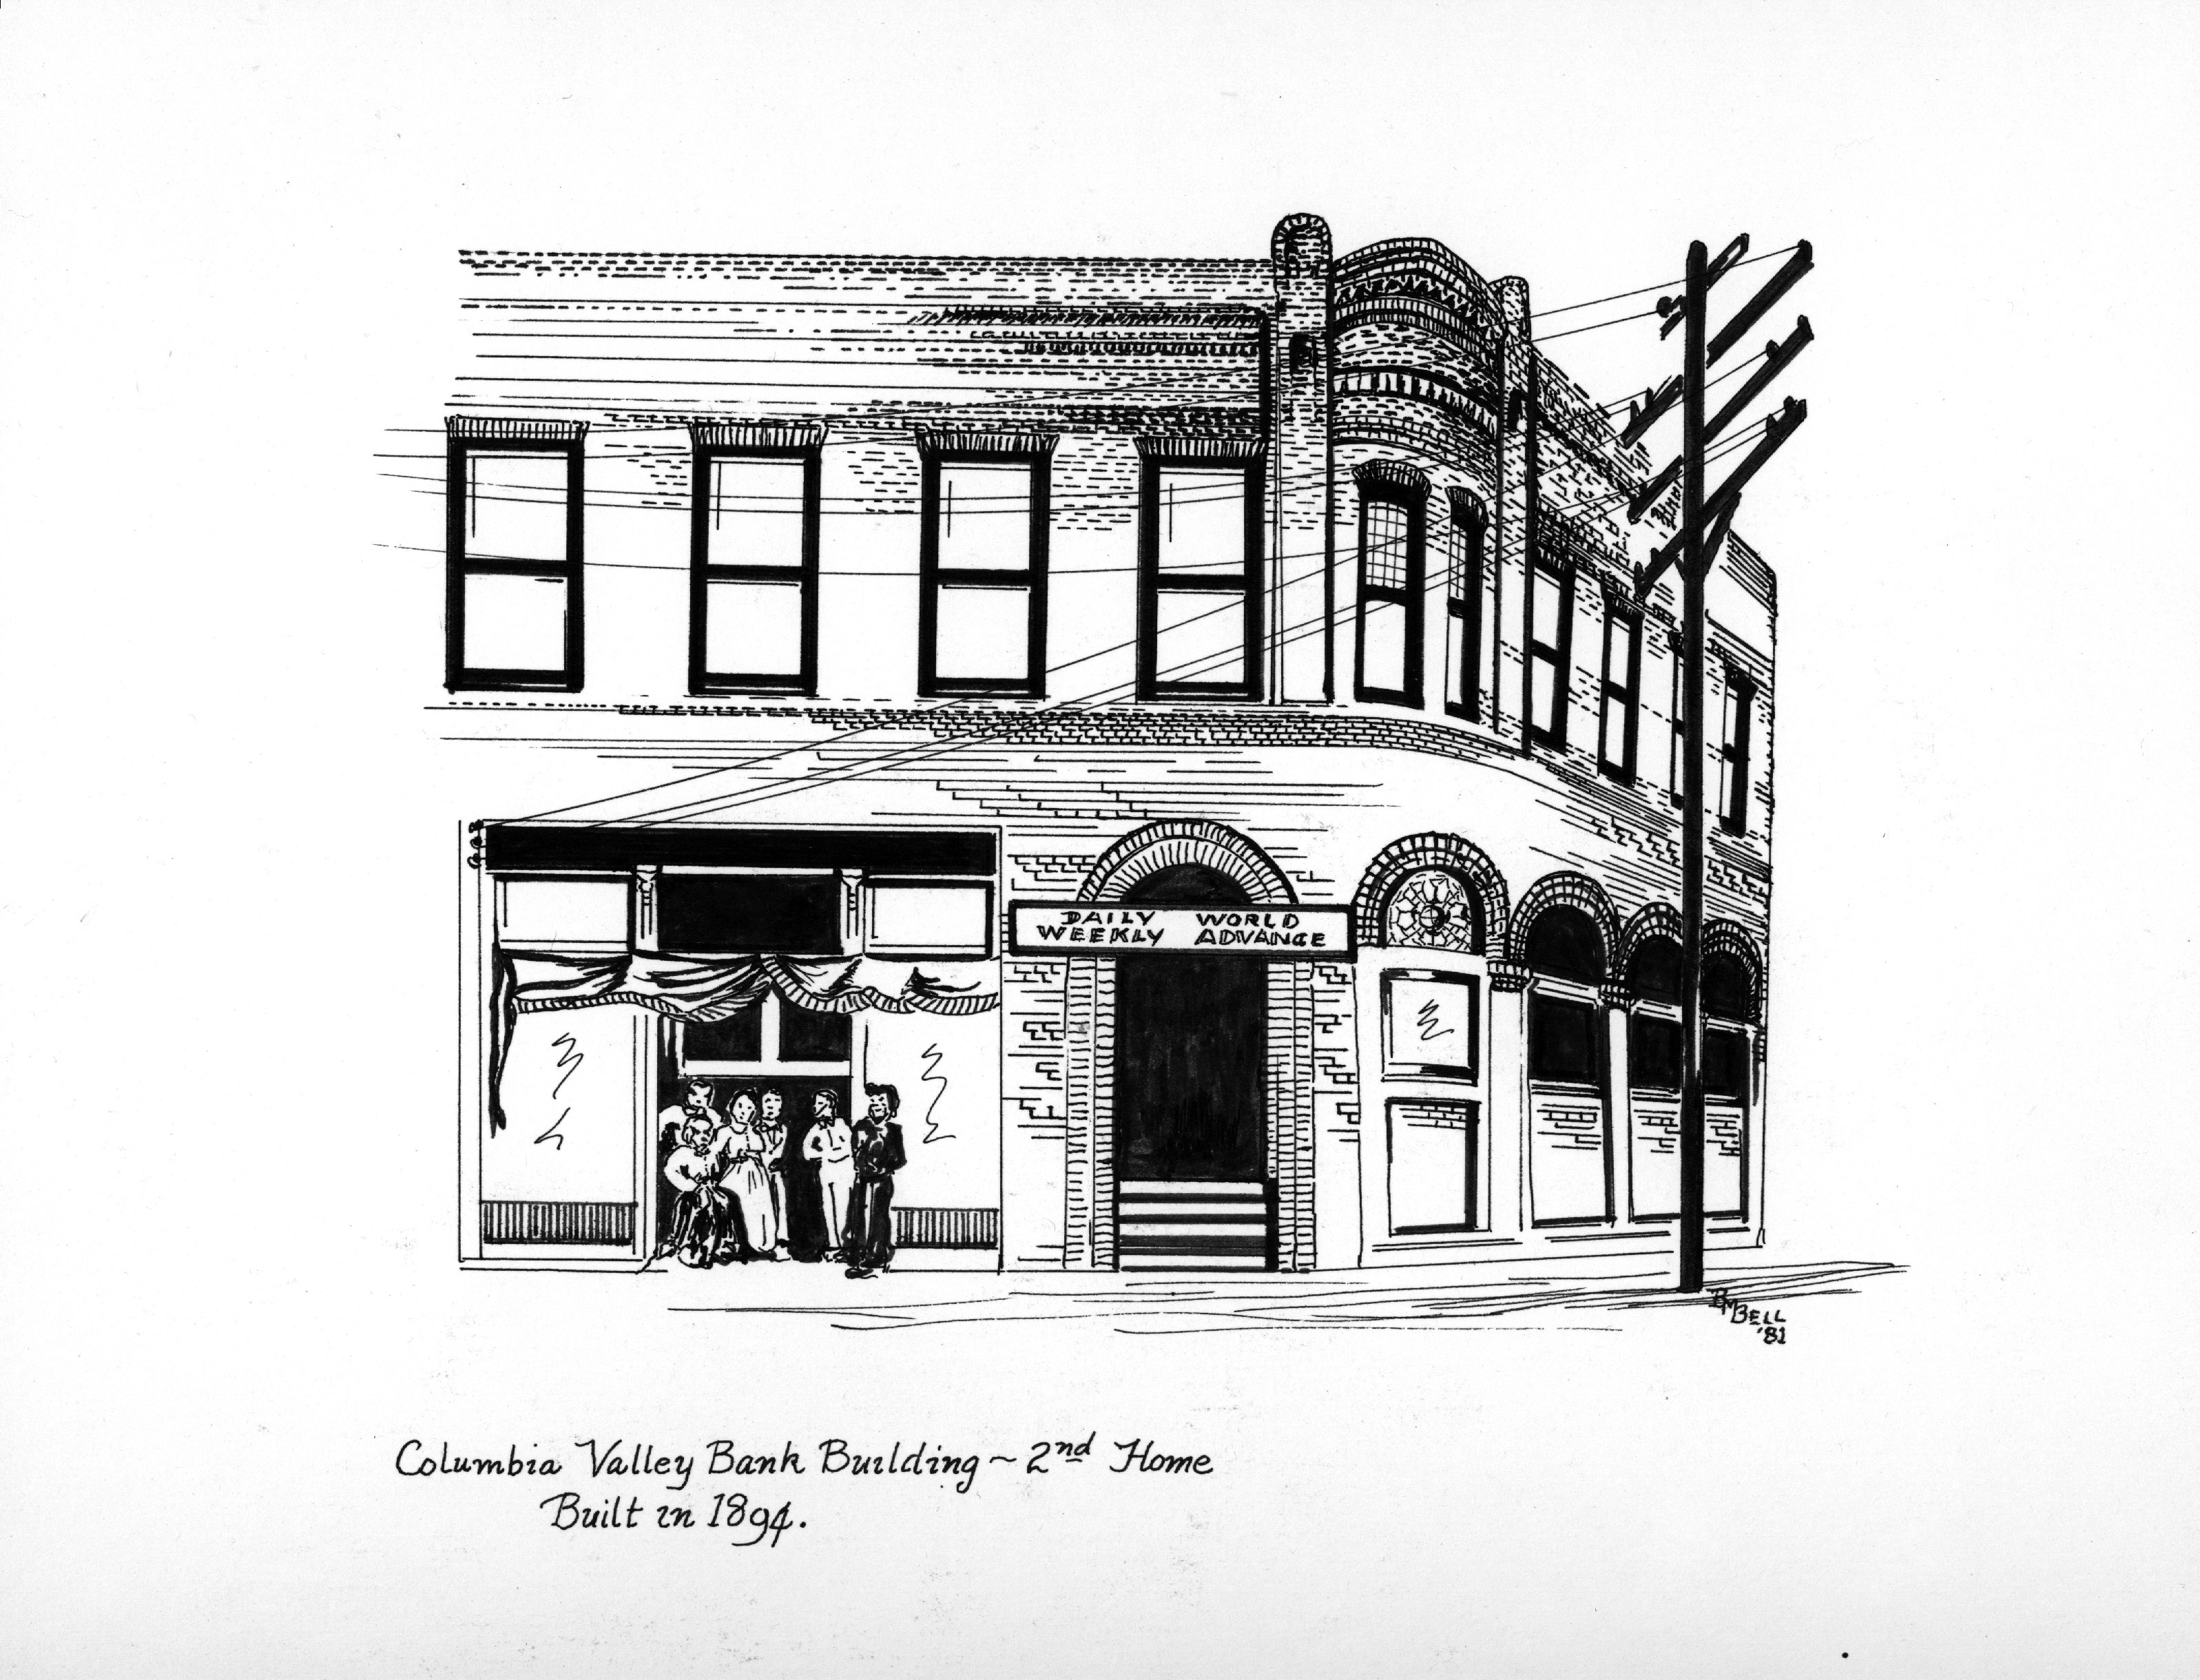 An illustration by artist Betty Bell of the second home of Columbia Valley Bank.